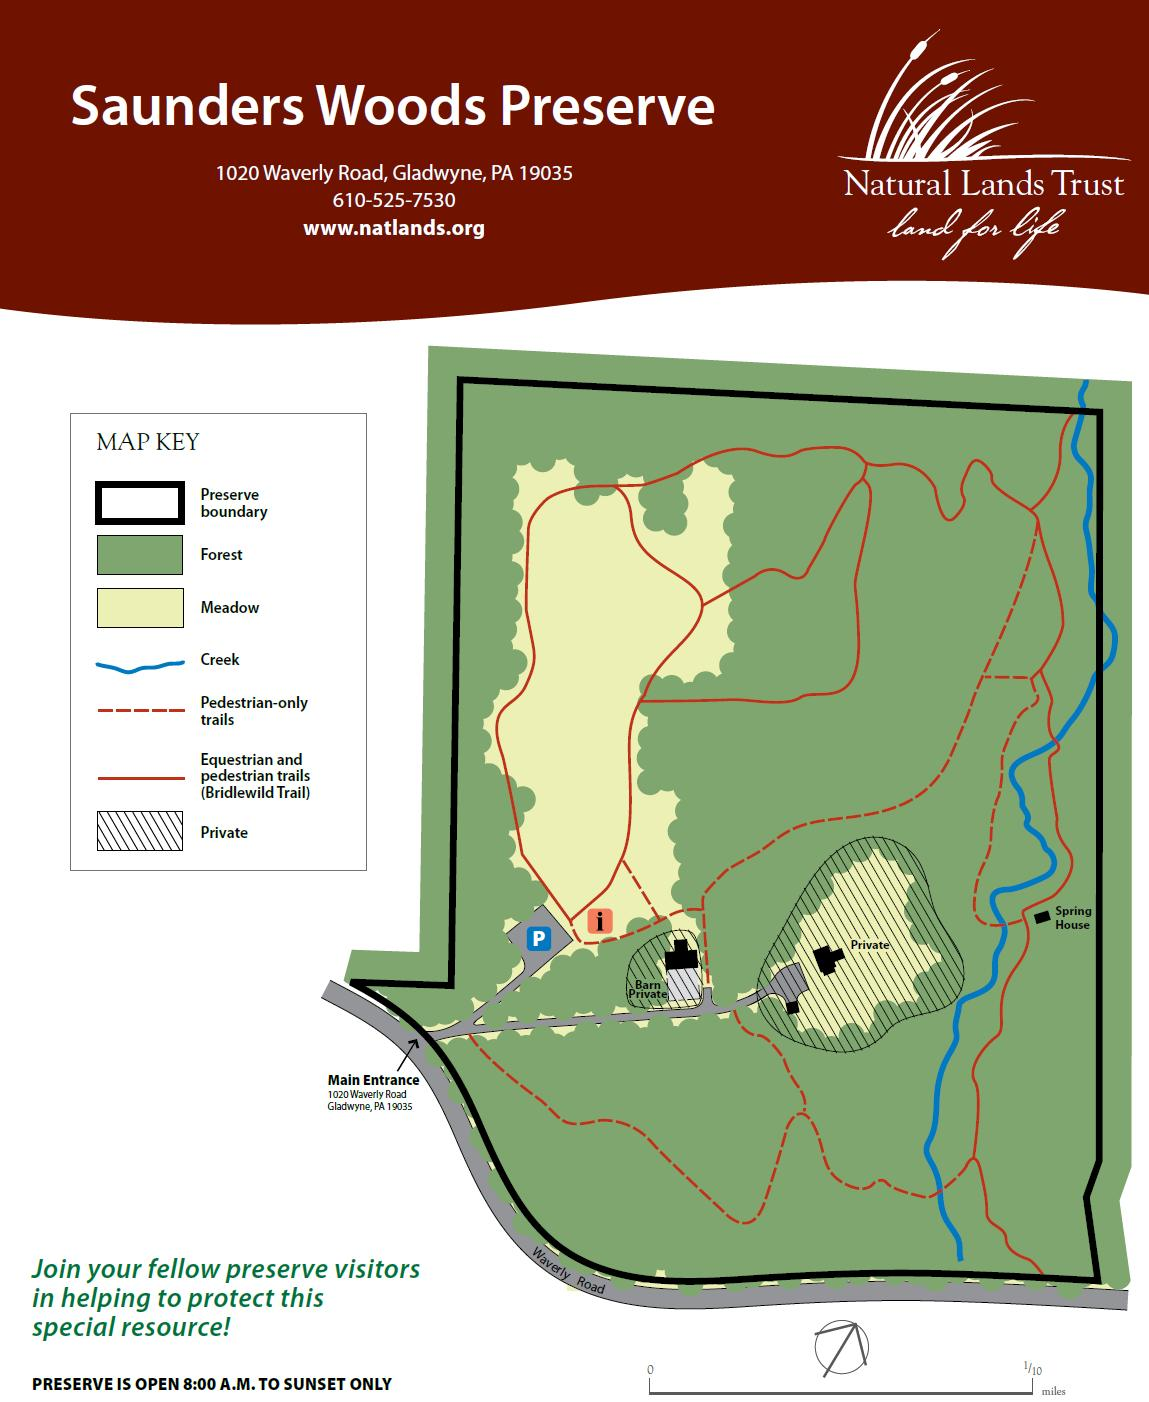 Saunders Woods map